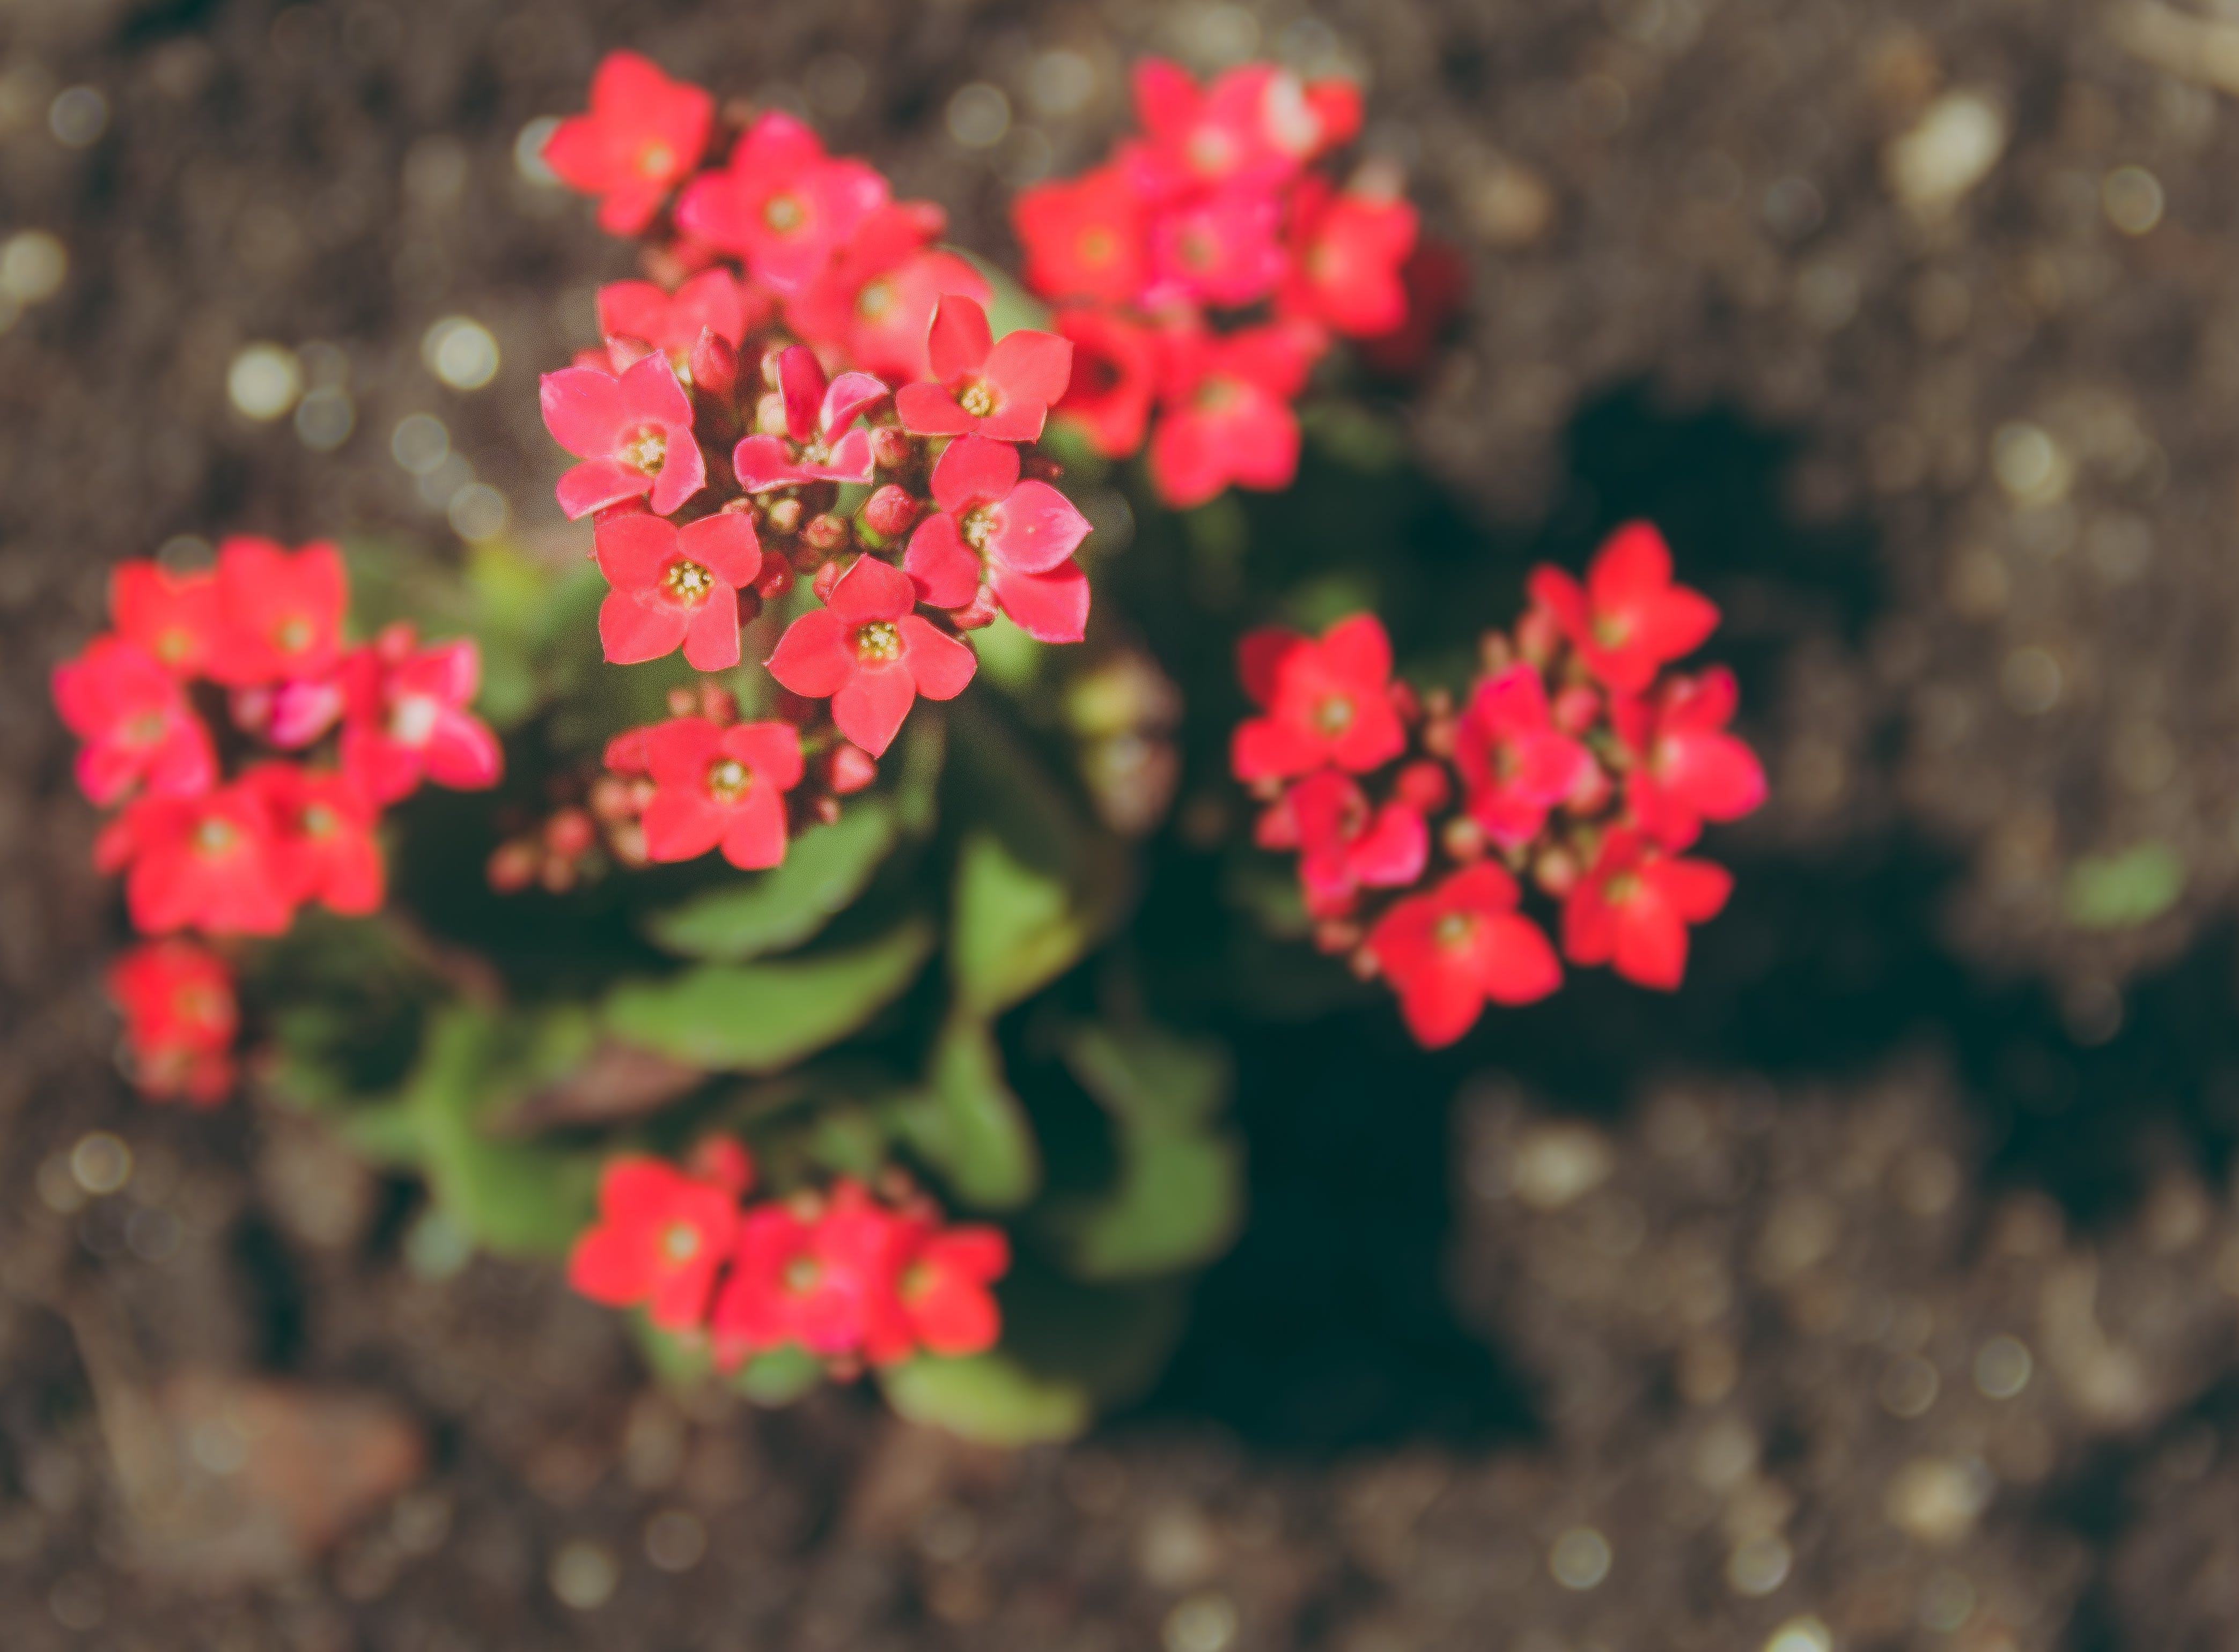 Close-up Photography of Kalanchoe Flowers